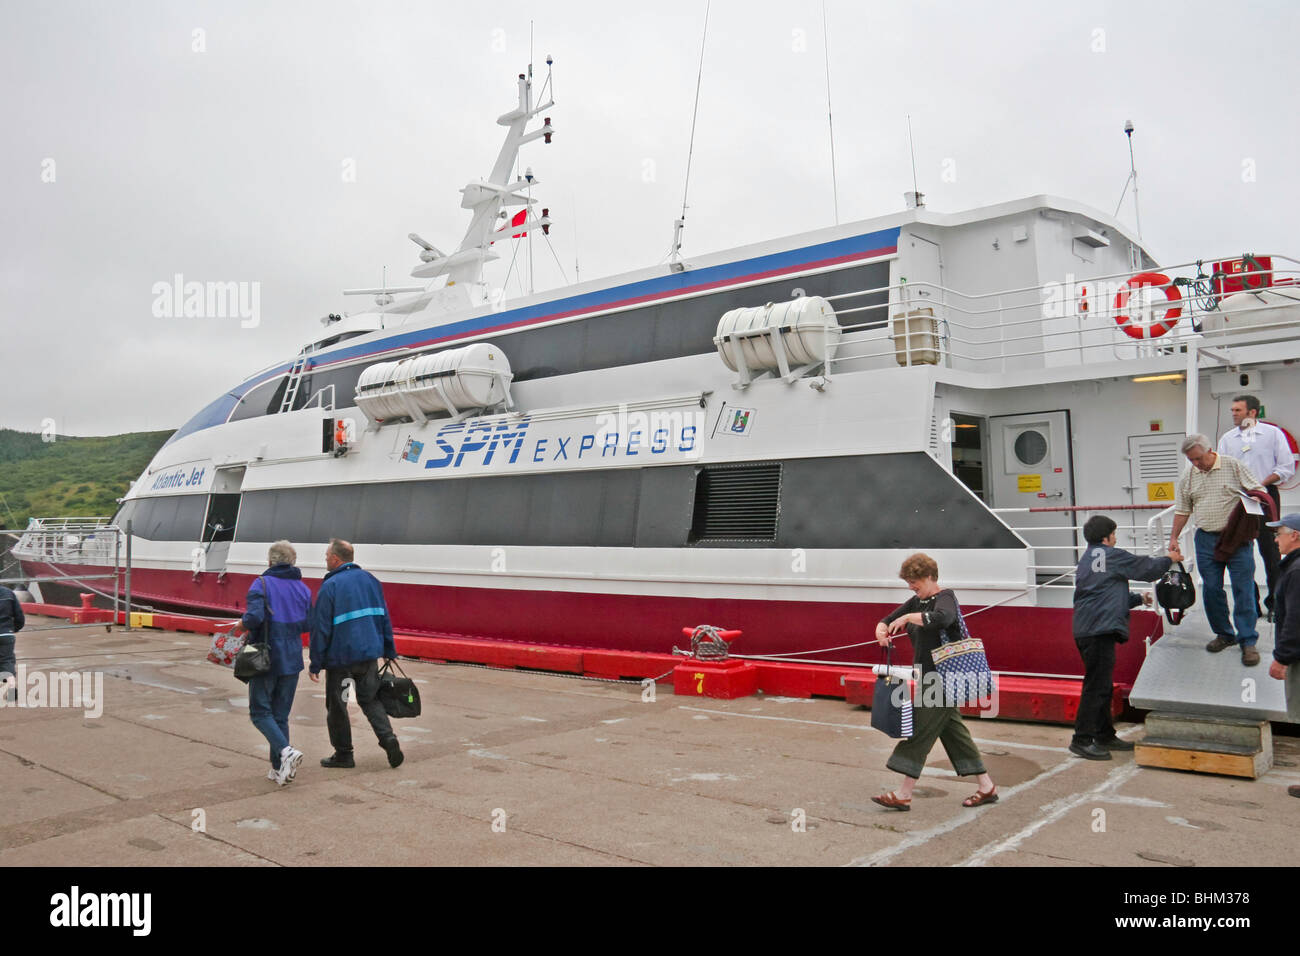 The SPM Express Atlantic Jet ferry (a fast catamaran) serves the route between Fortune, Newfoundland and St Pierre - Stock Image